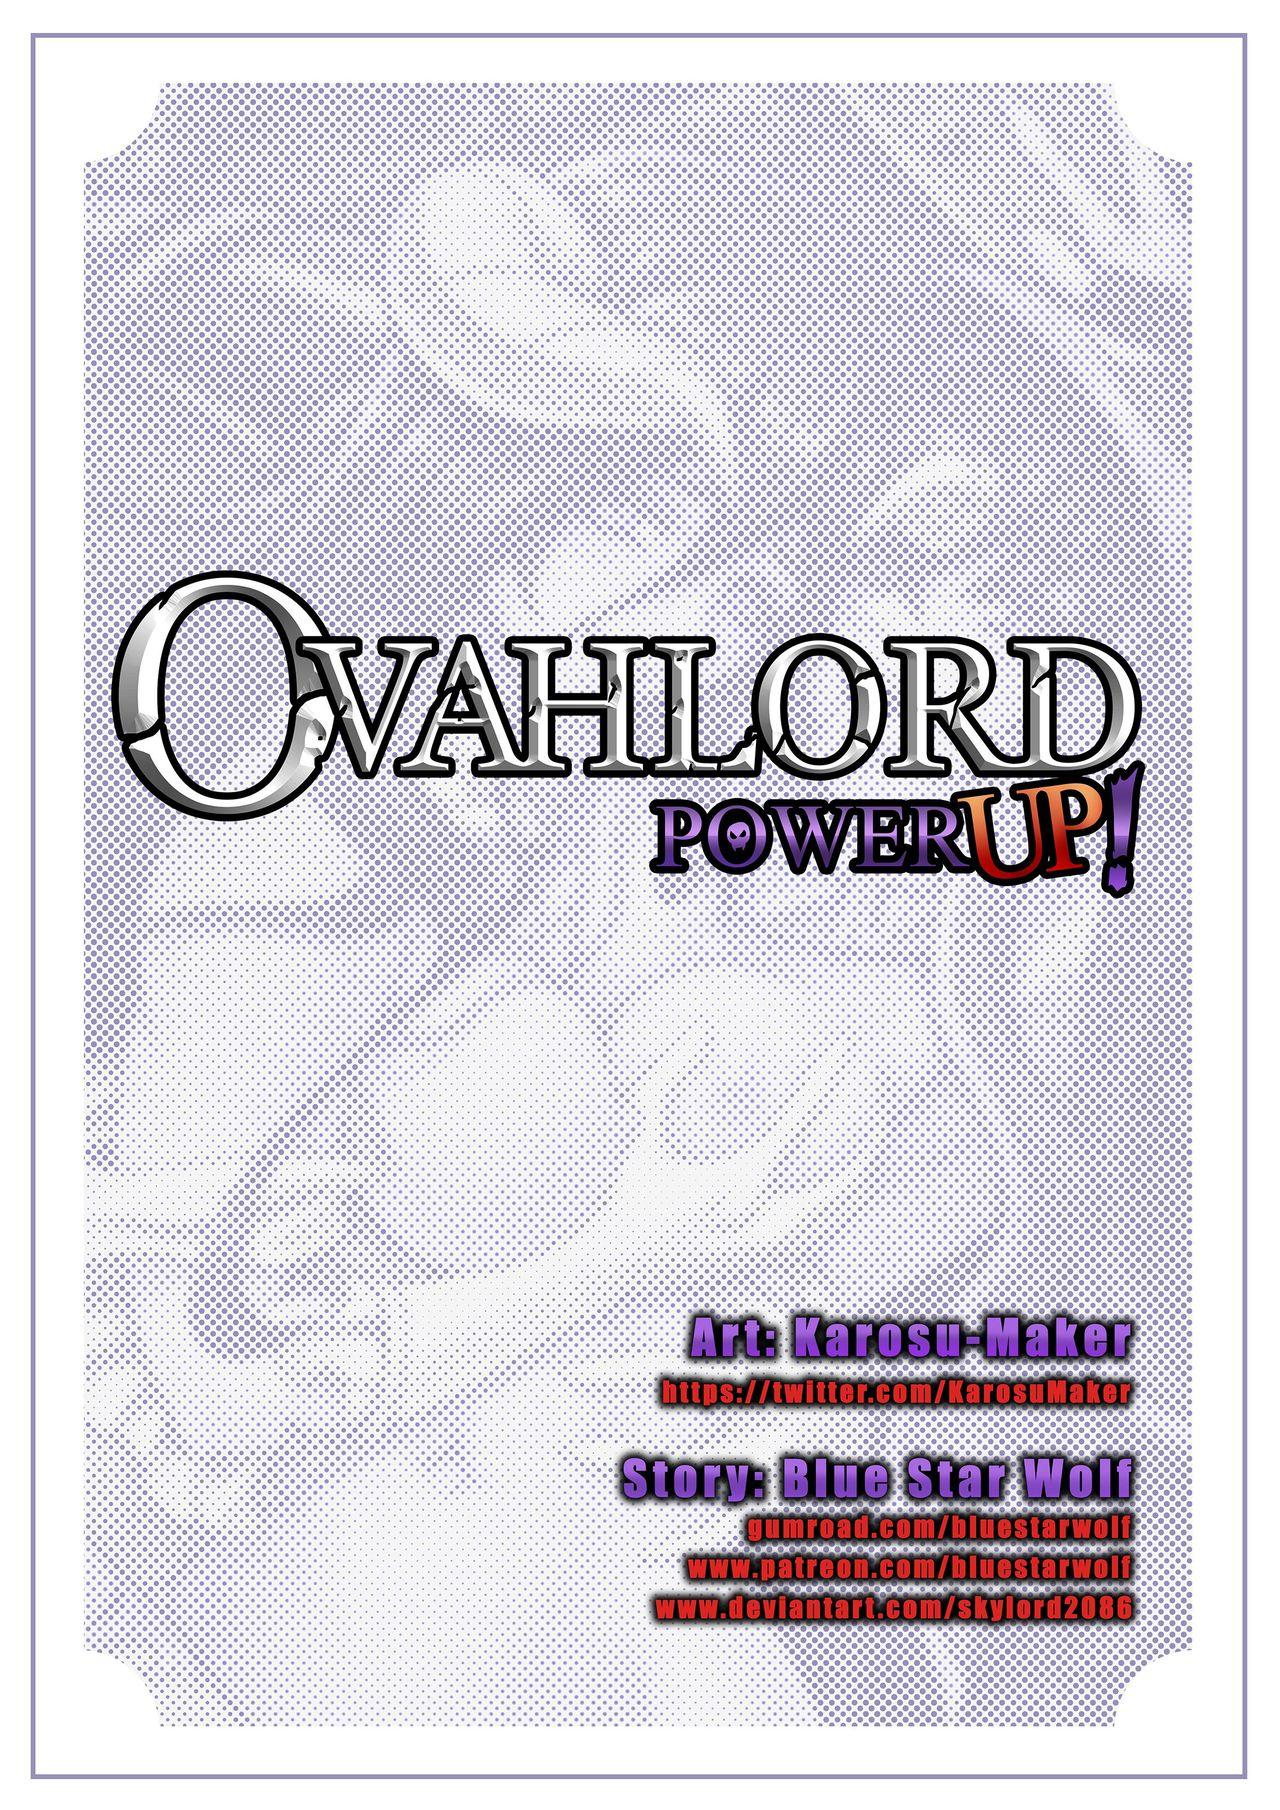 Ovahlord Power up 1